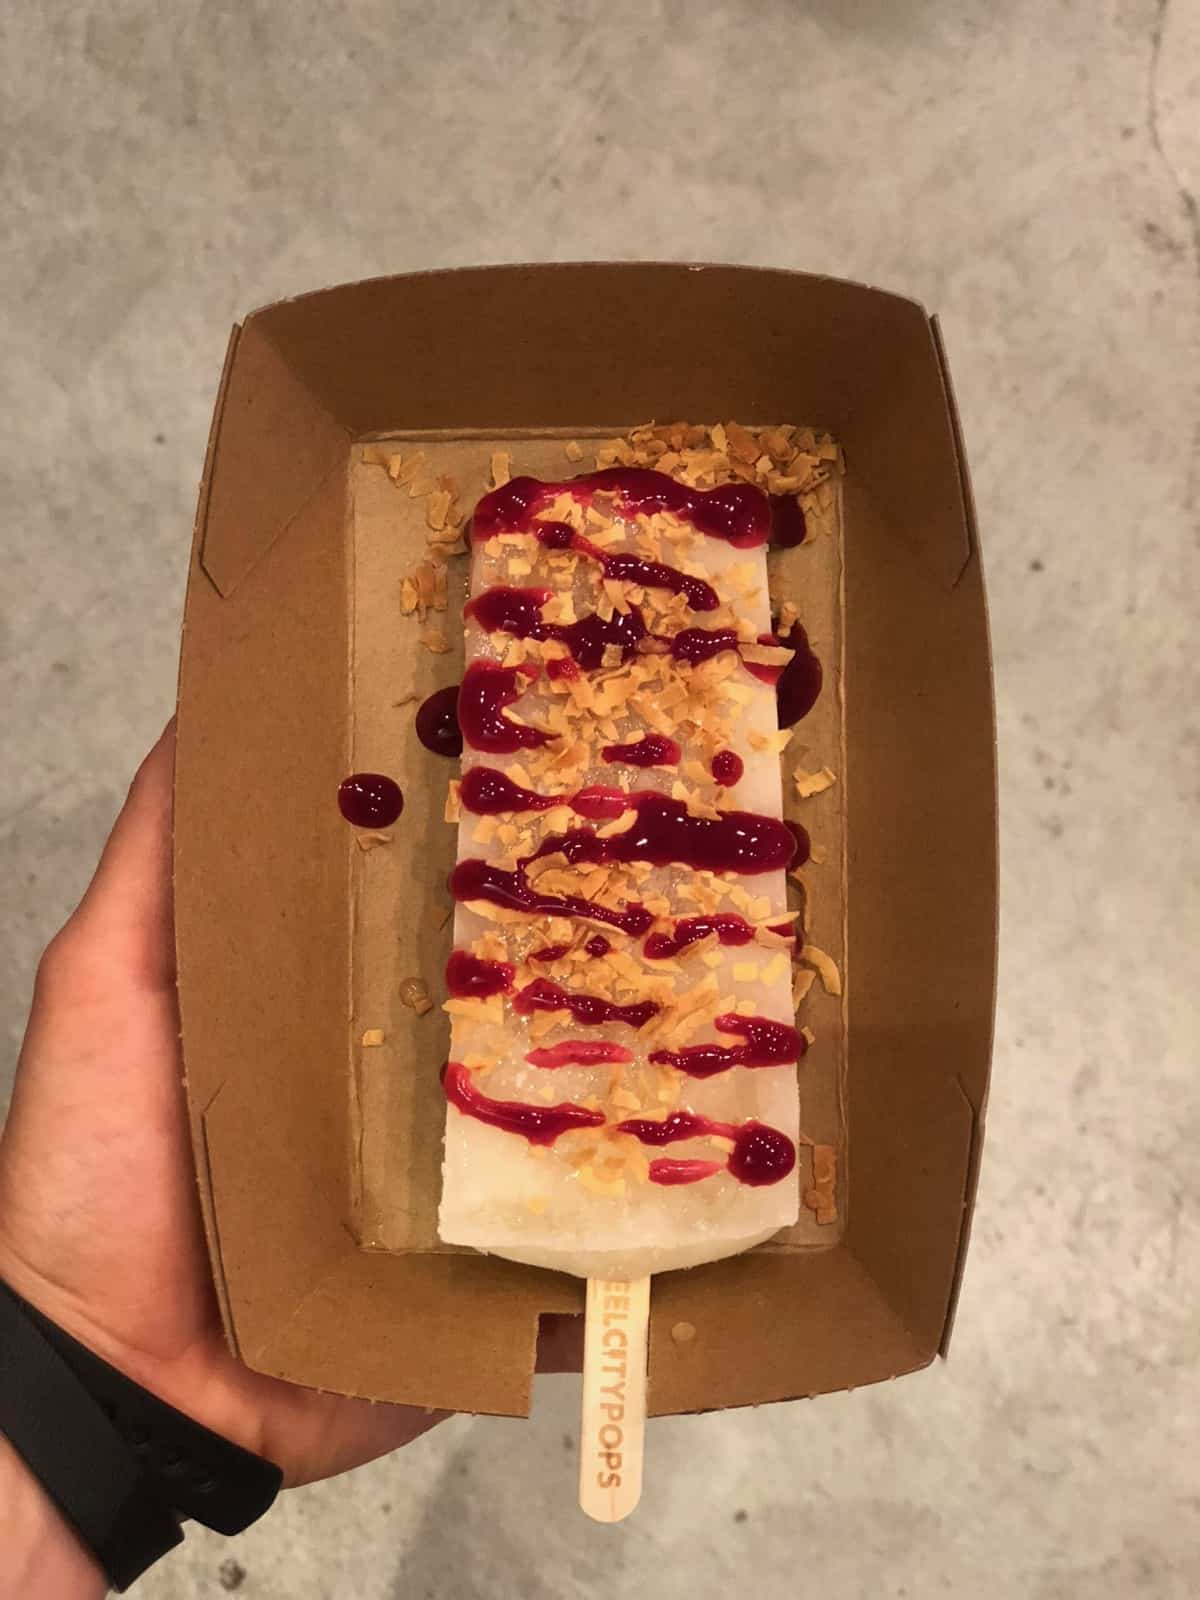 Steel City Popsicle covered with raspberry spread and toasted coconut